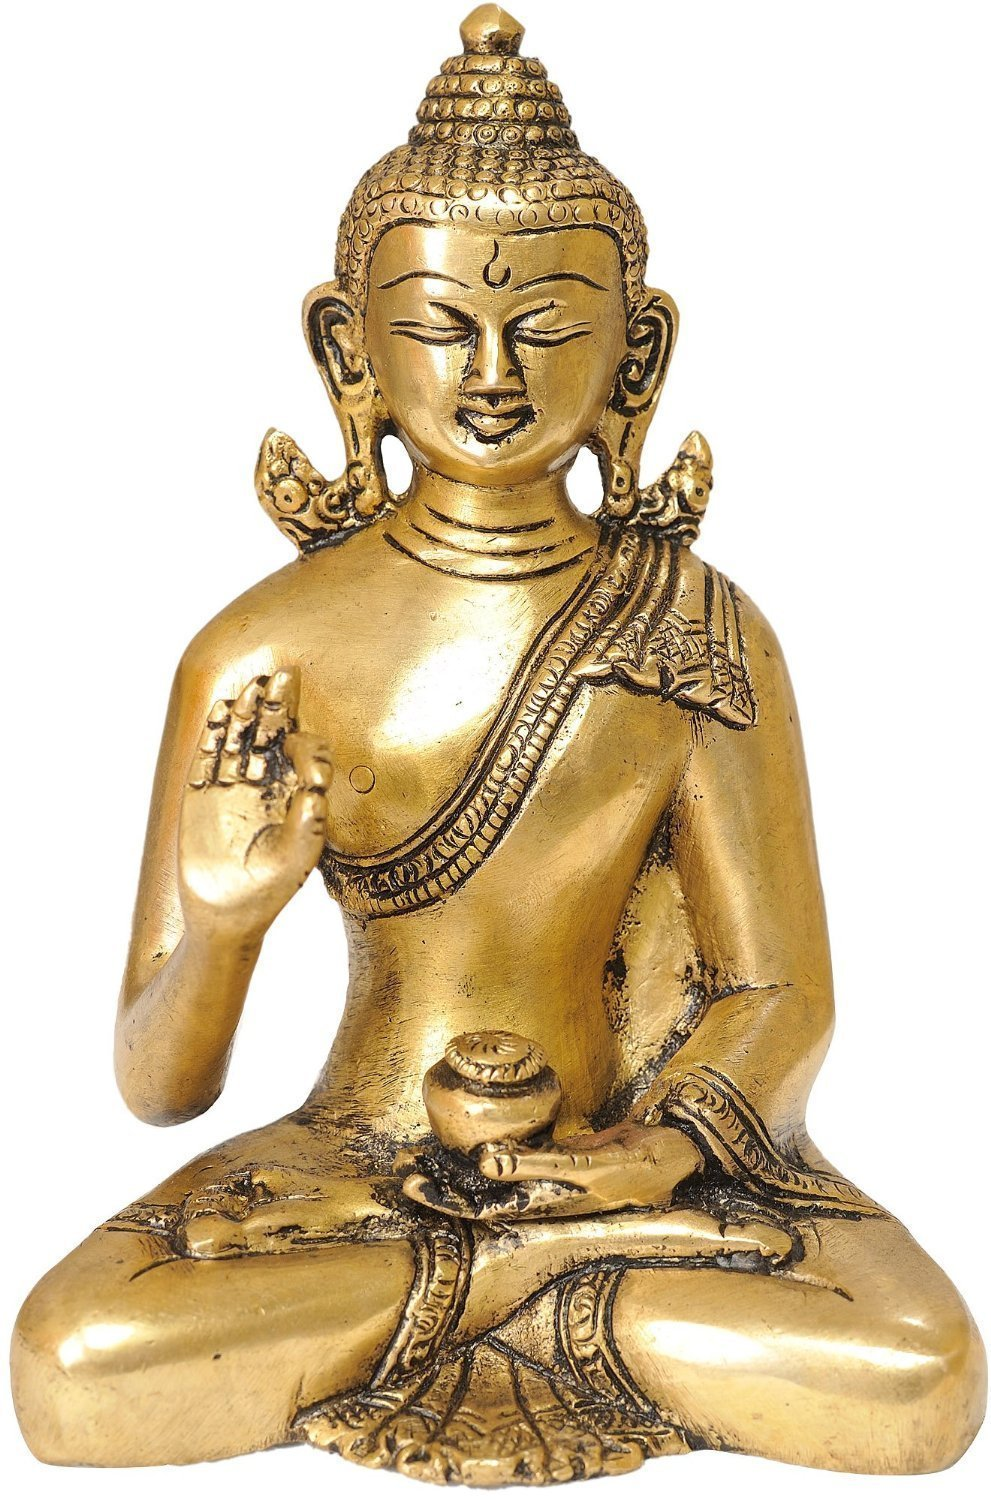 AapnoCraft Thai Blessing Buddha Statue Brass Meditating Buddha Figurine/Sculpture Golden Colour Home & Table Decor